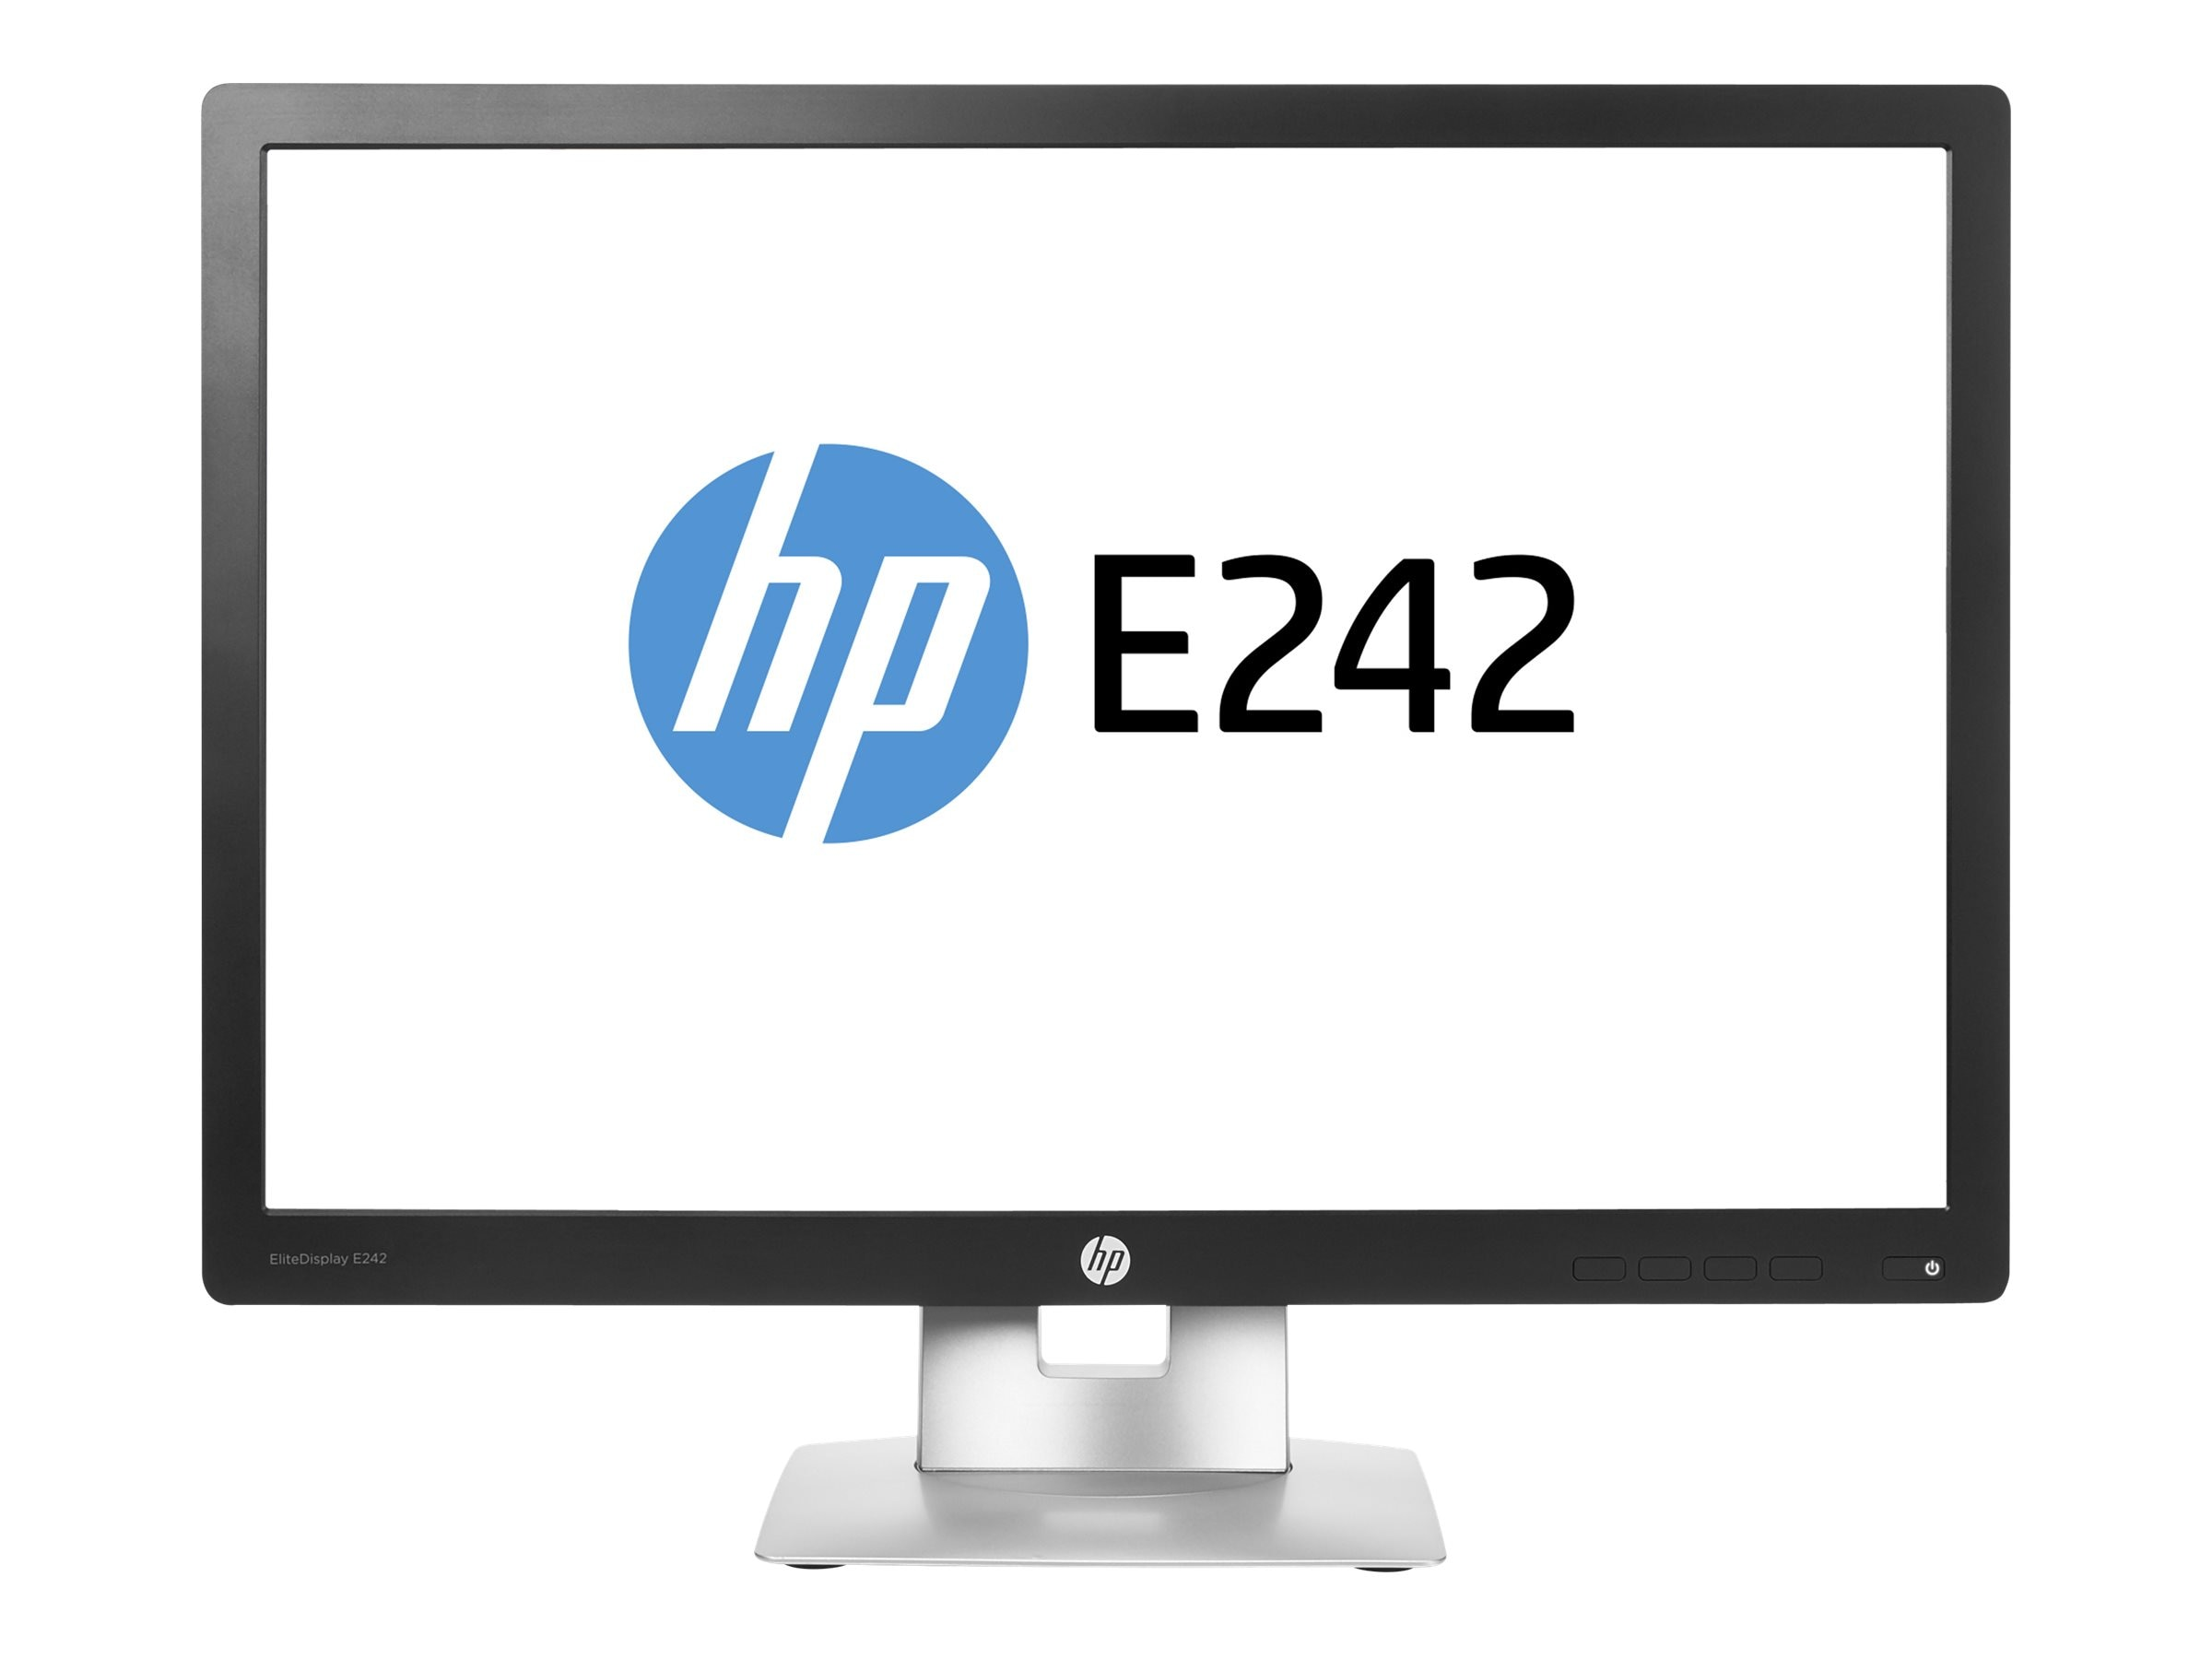 HP 24 E242 Full HD LED-LCD Monitor, Black